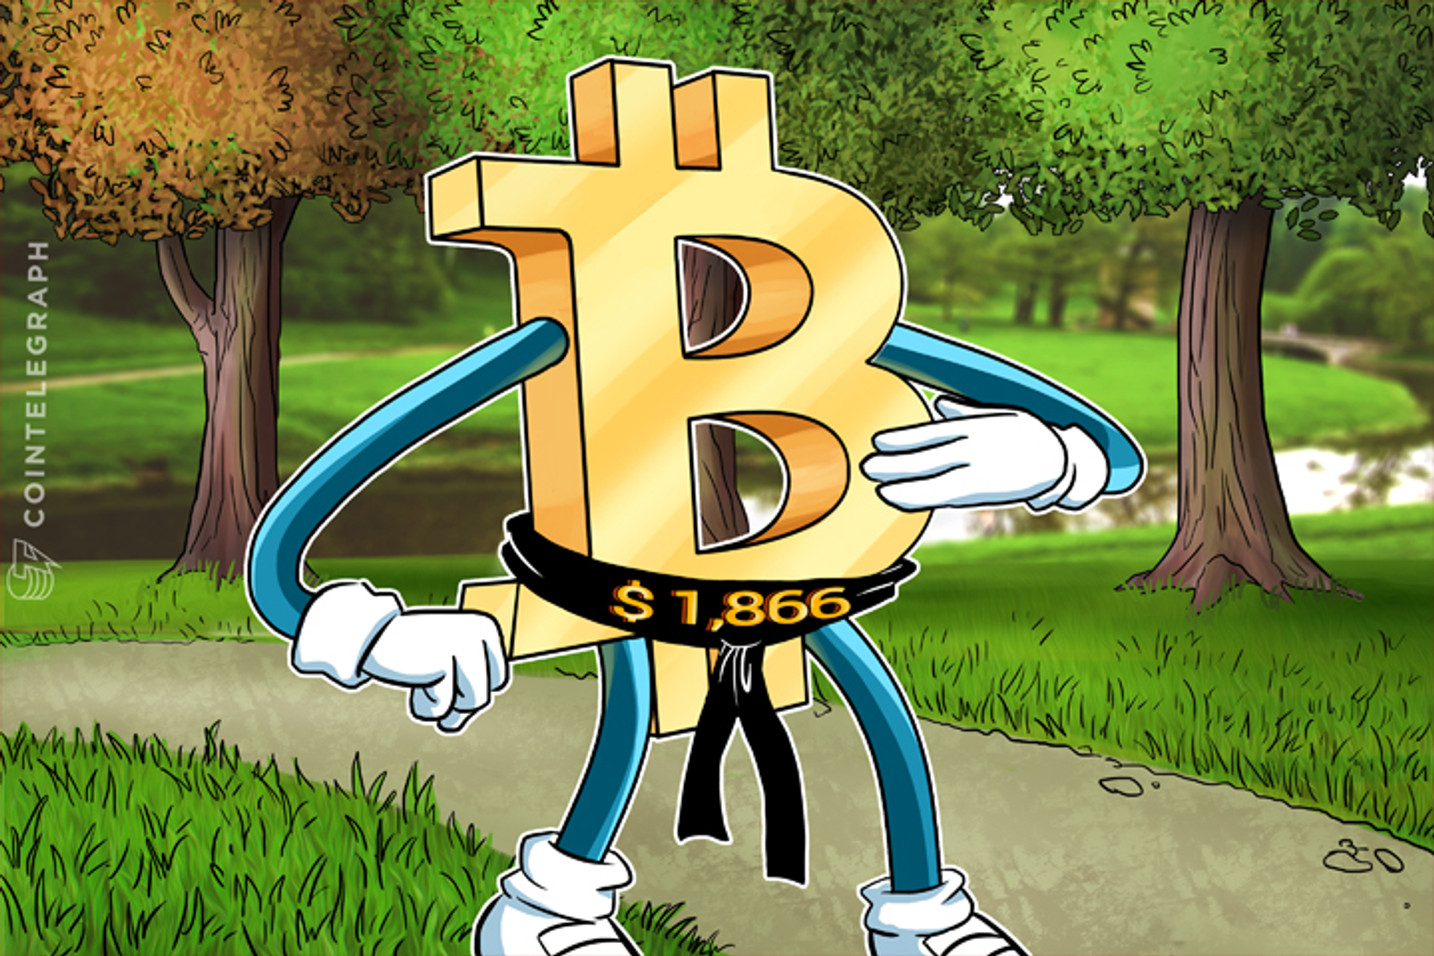 Bitcoin Price Hits New All-Time High Again at $1,866: Major Factors for Growth